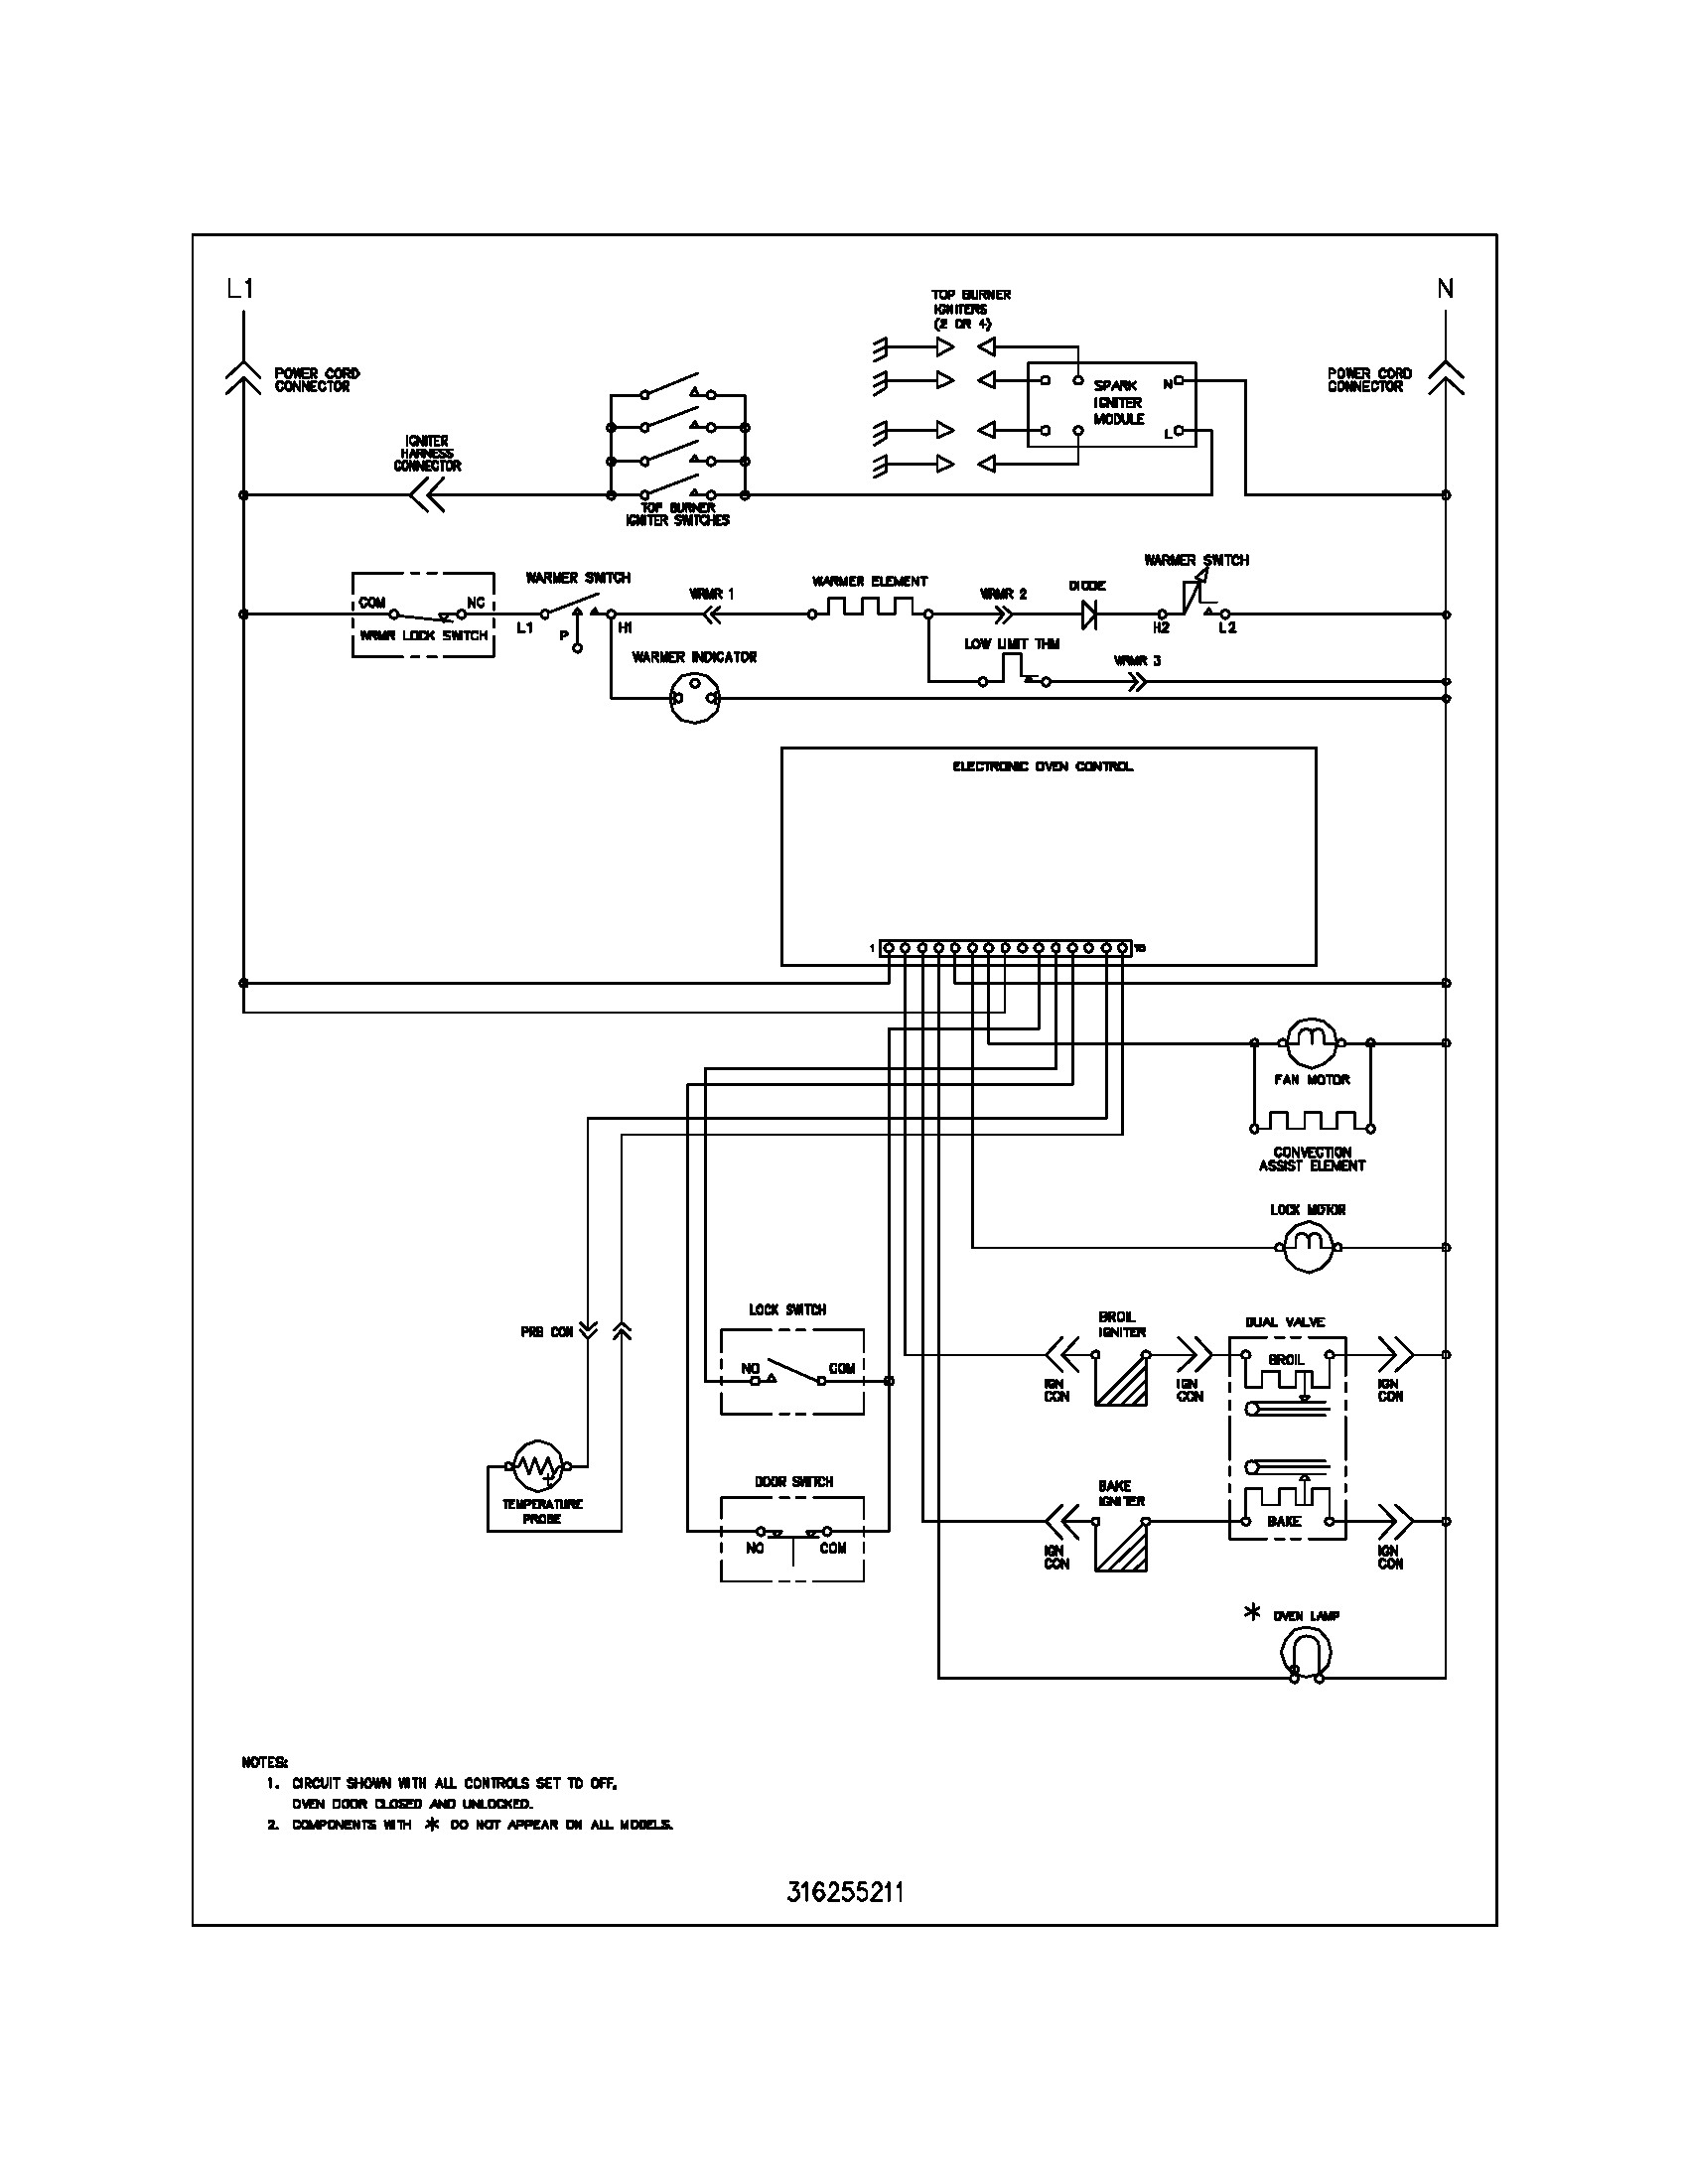 Older Gas Furnace Wiring Diagram Gas Furnace Wiring Diagram Fine Design General Electric Frigidaire Of Older Gas Furnace Wiring Diagram